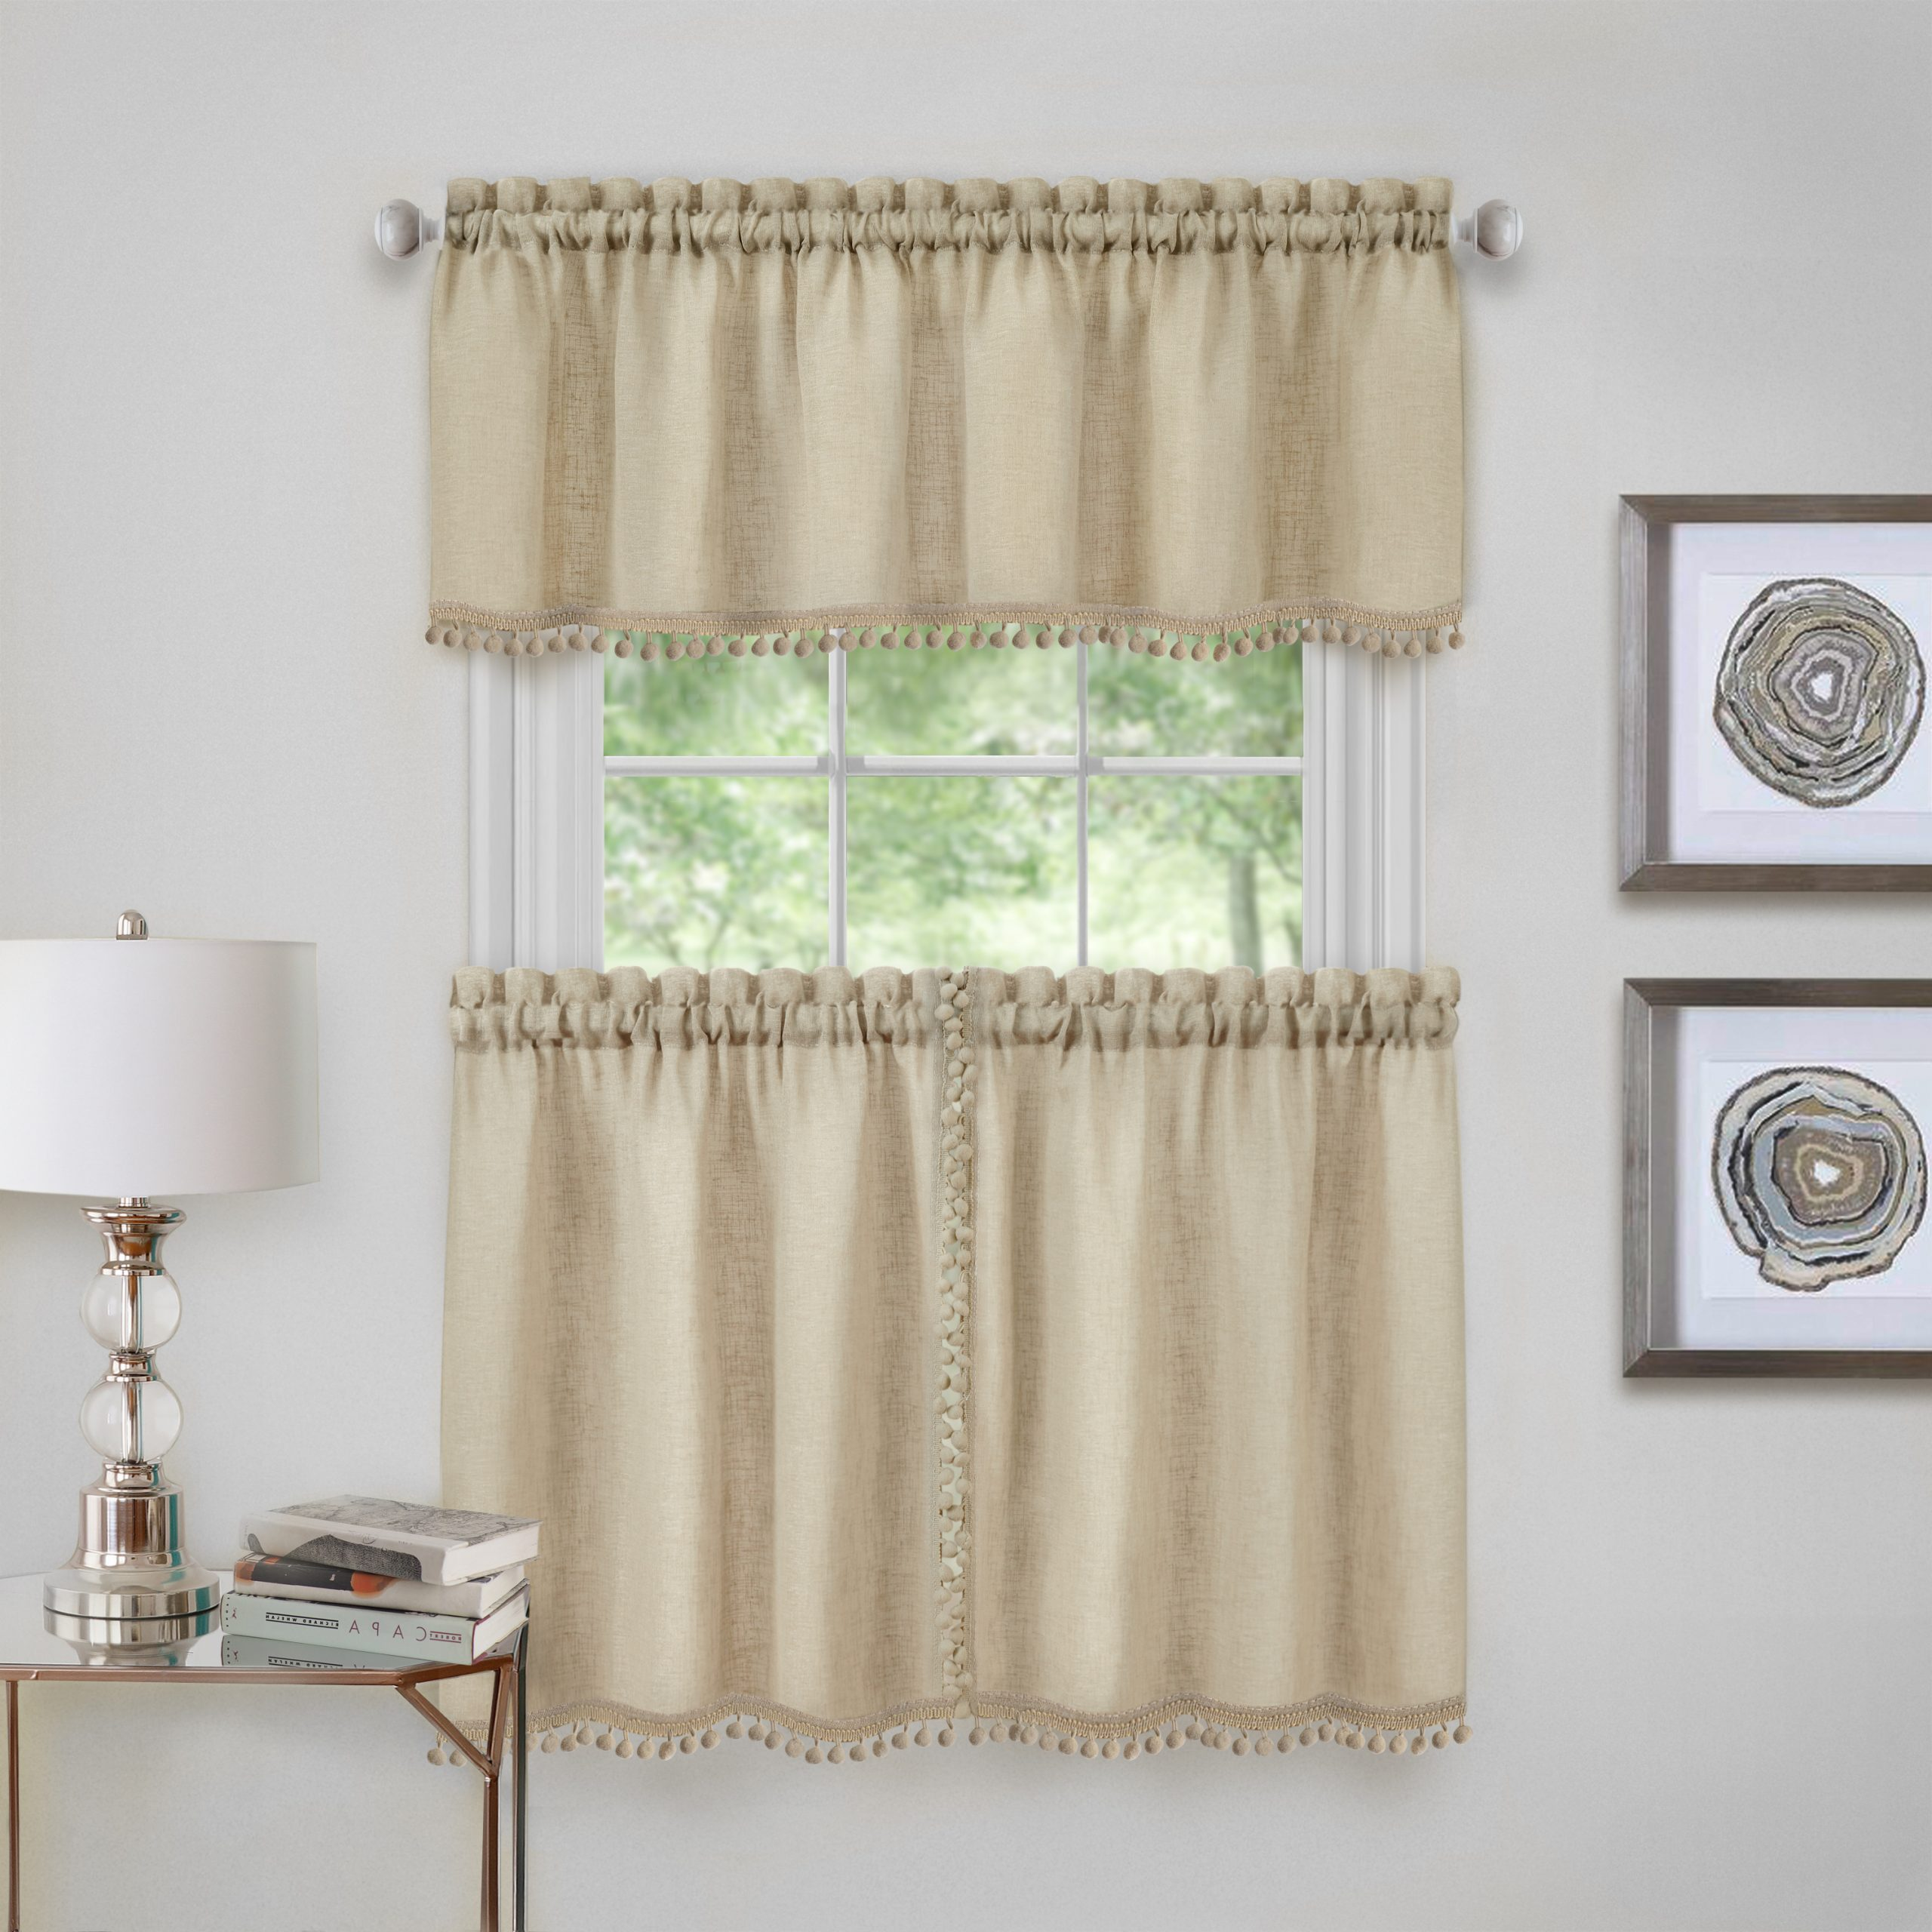 Live, Love, Laugh Window Curtain Tier Pair And Valance Sets With Regard To Famous Achim Wallace Window Kitchen Curtain Tier Pair And Valance Set – 58x24 – Linen (View 14 of 20)